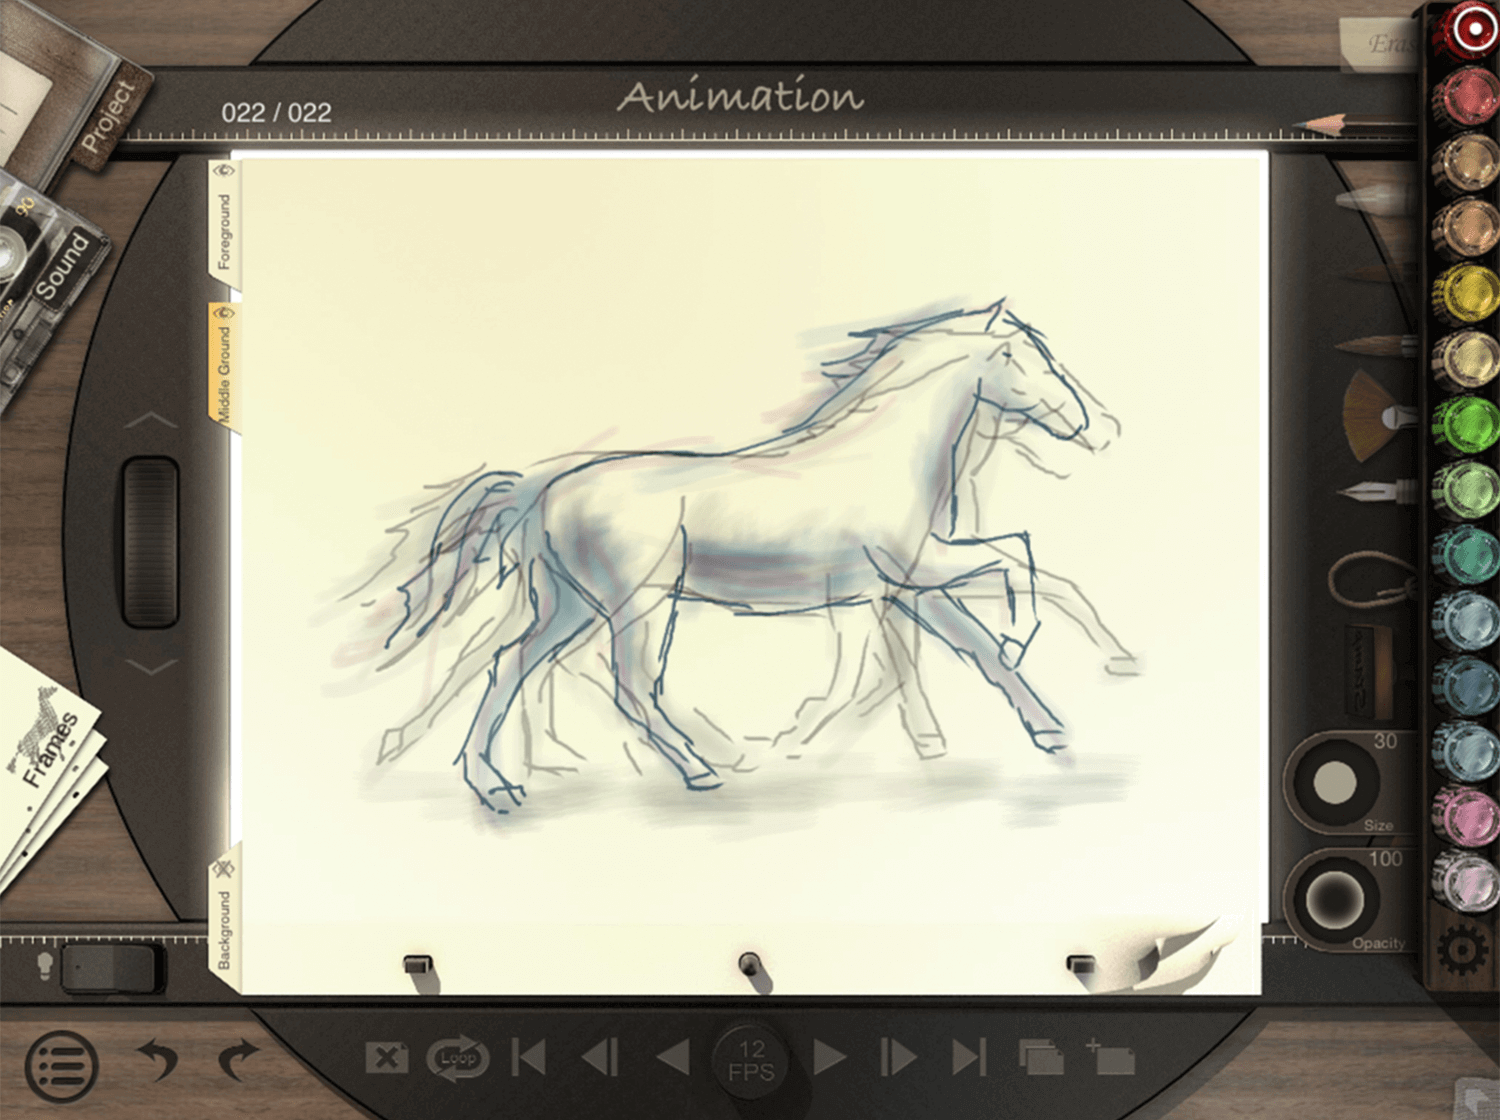 Animation apps for mobile - Animation Desk Classic